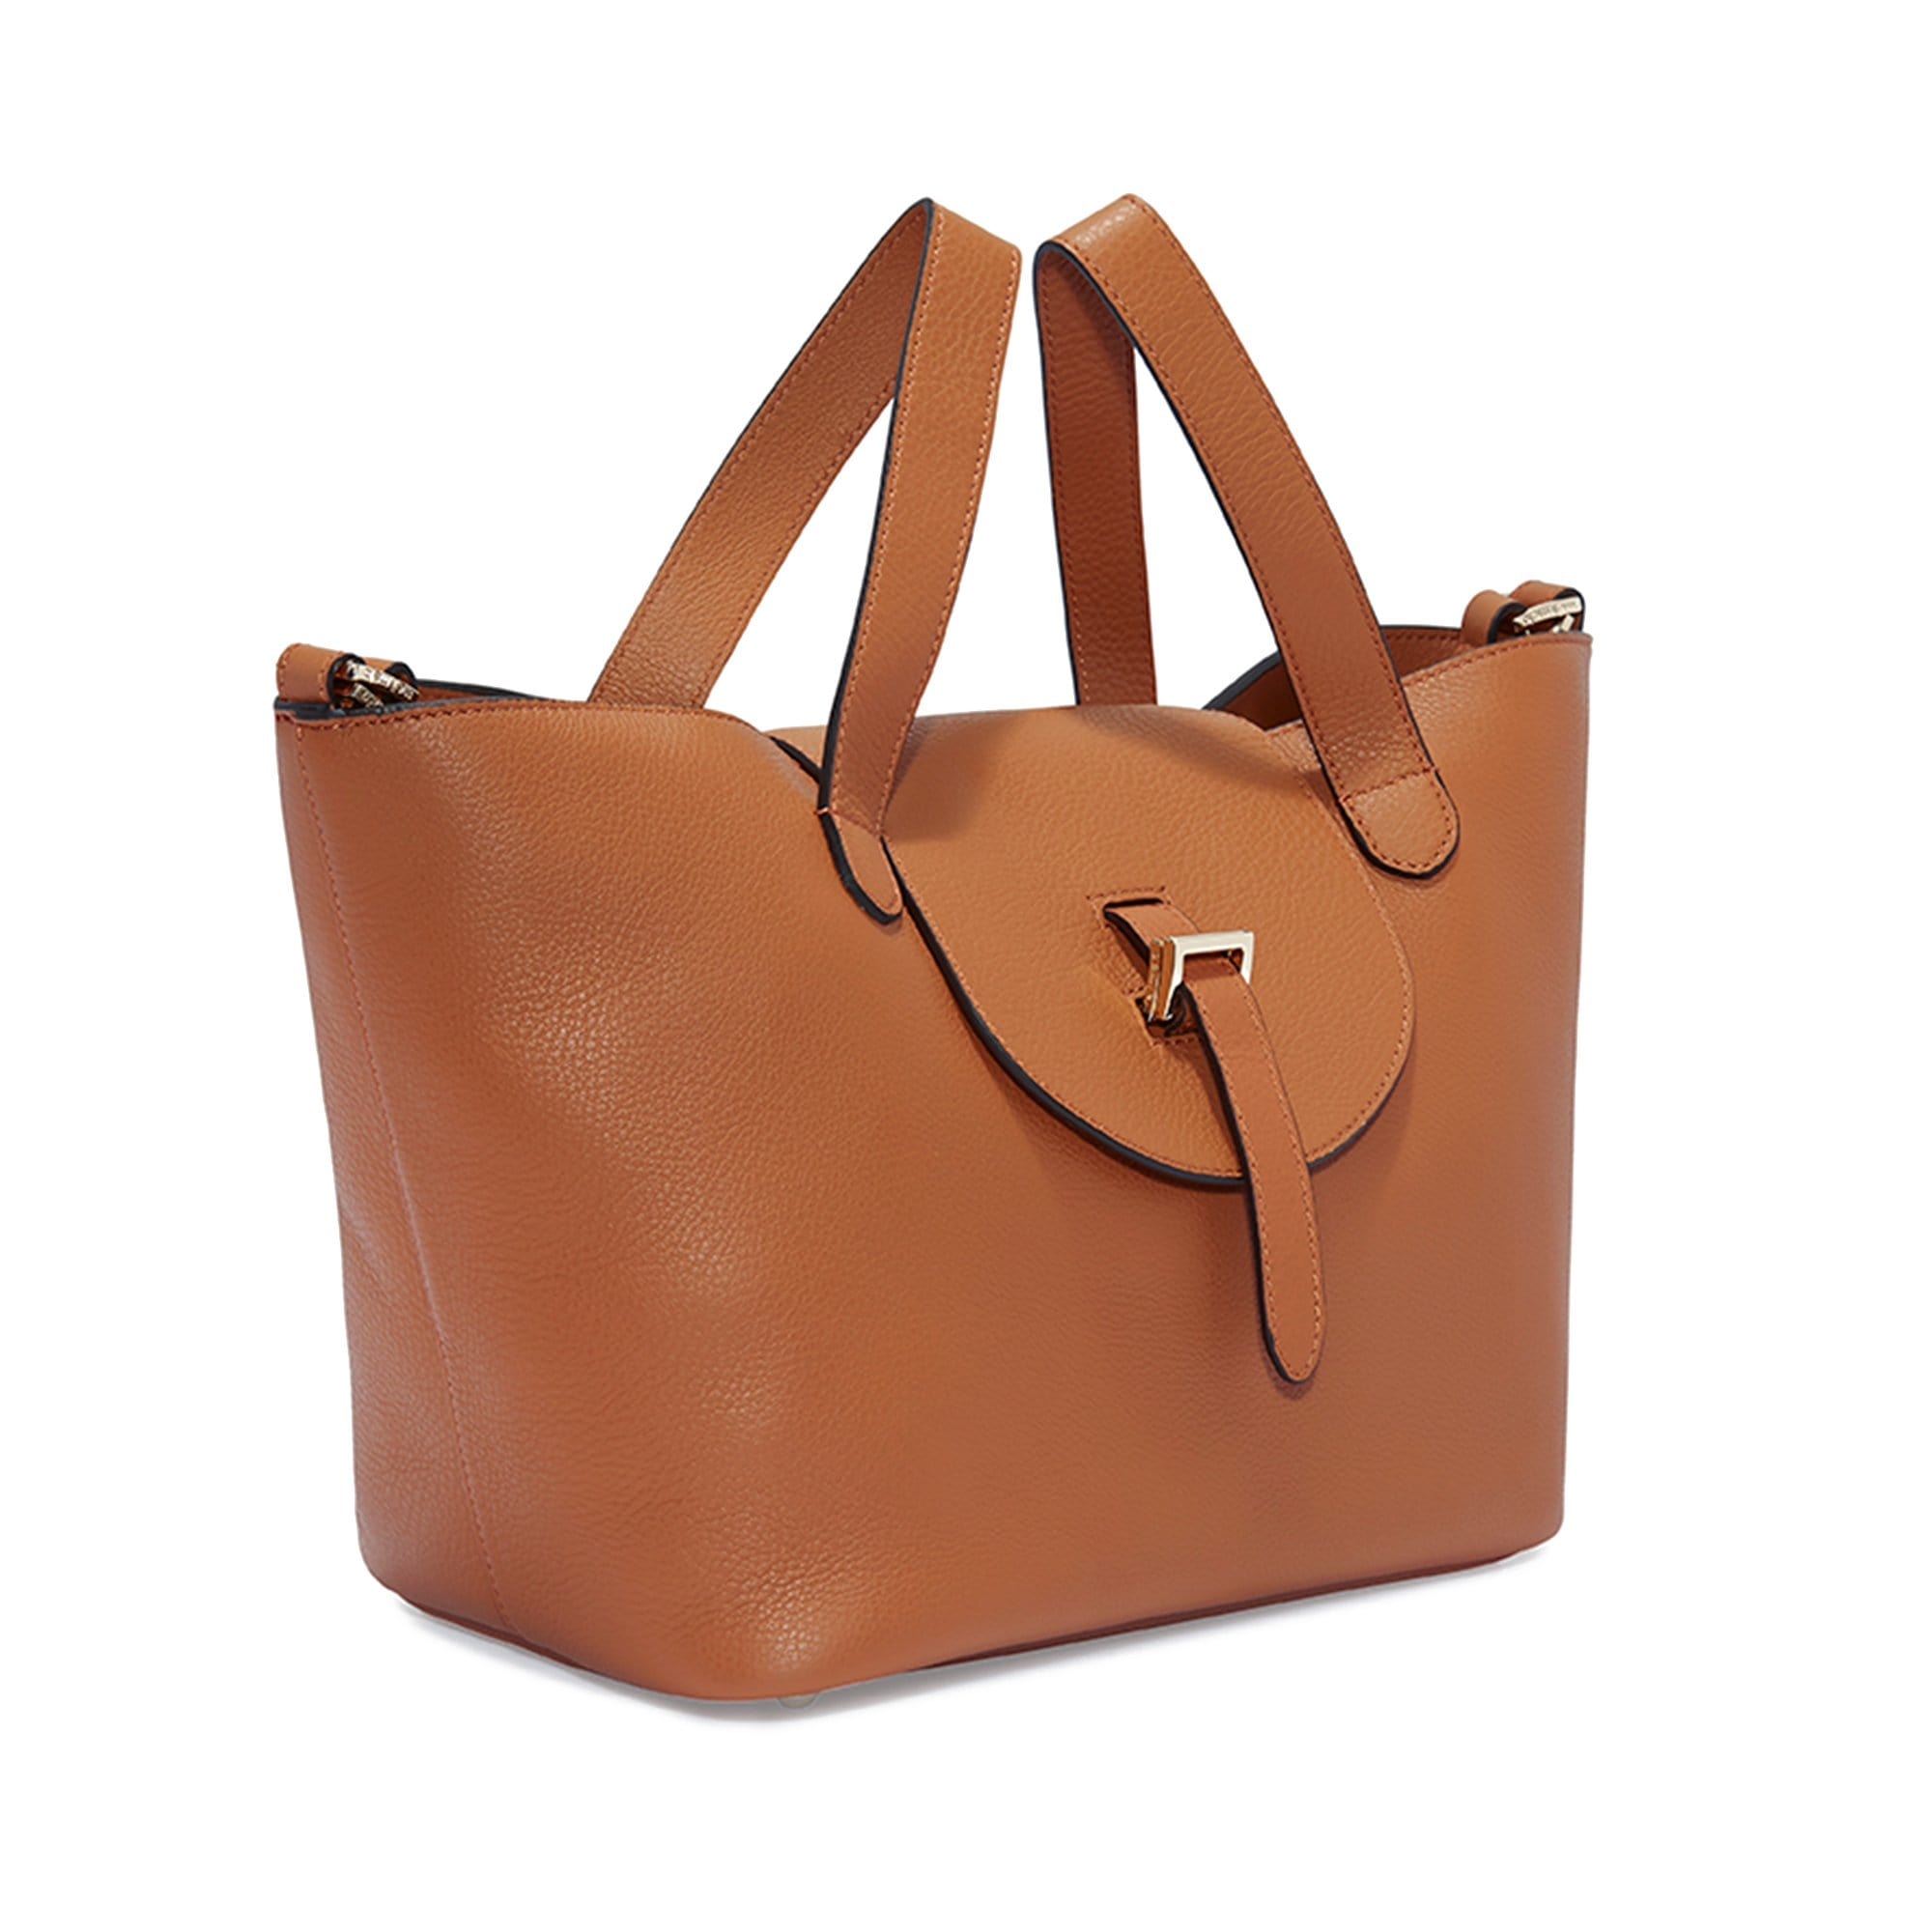 9cac2939bed5 Thela Medium Tan Tote Bag Tan